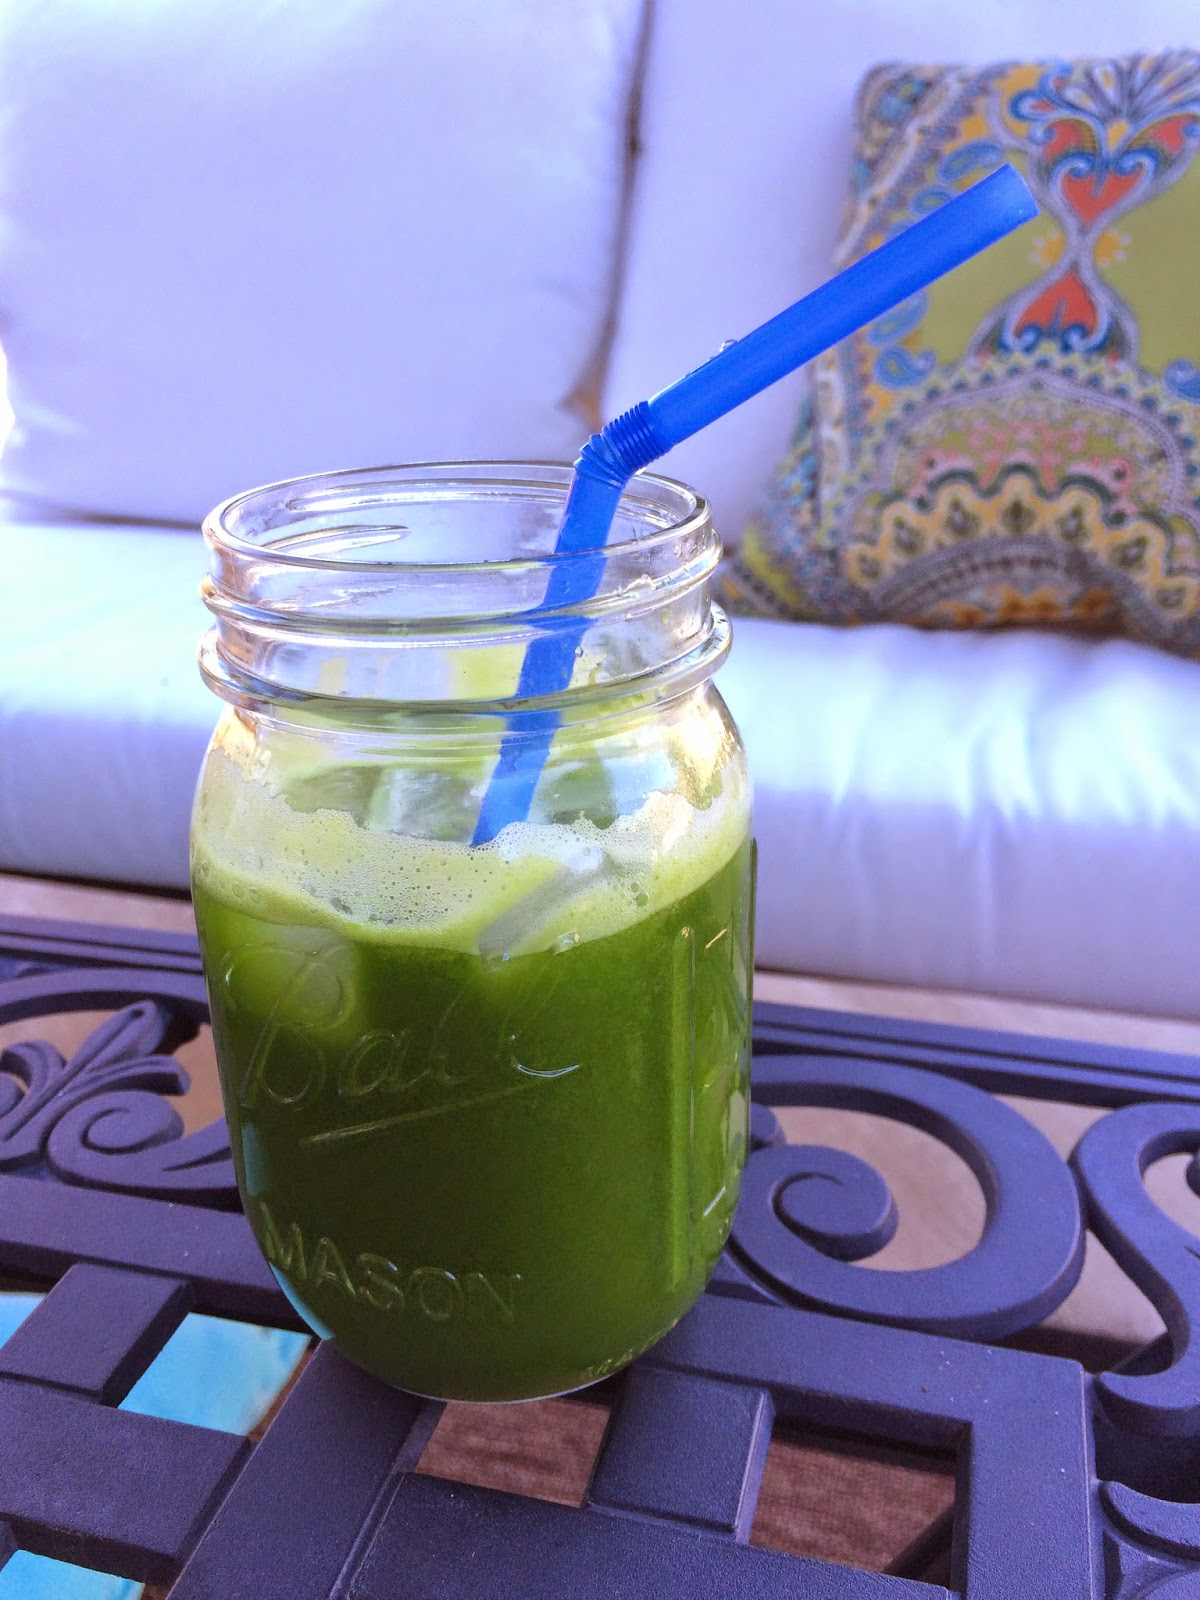 Kale Cucumber Spinach and Apple Juice